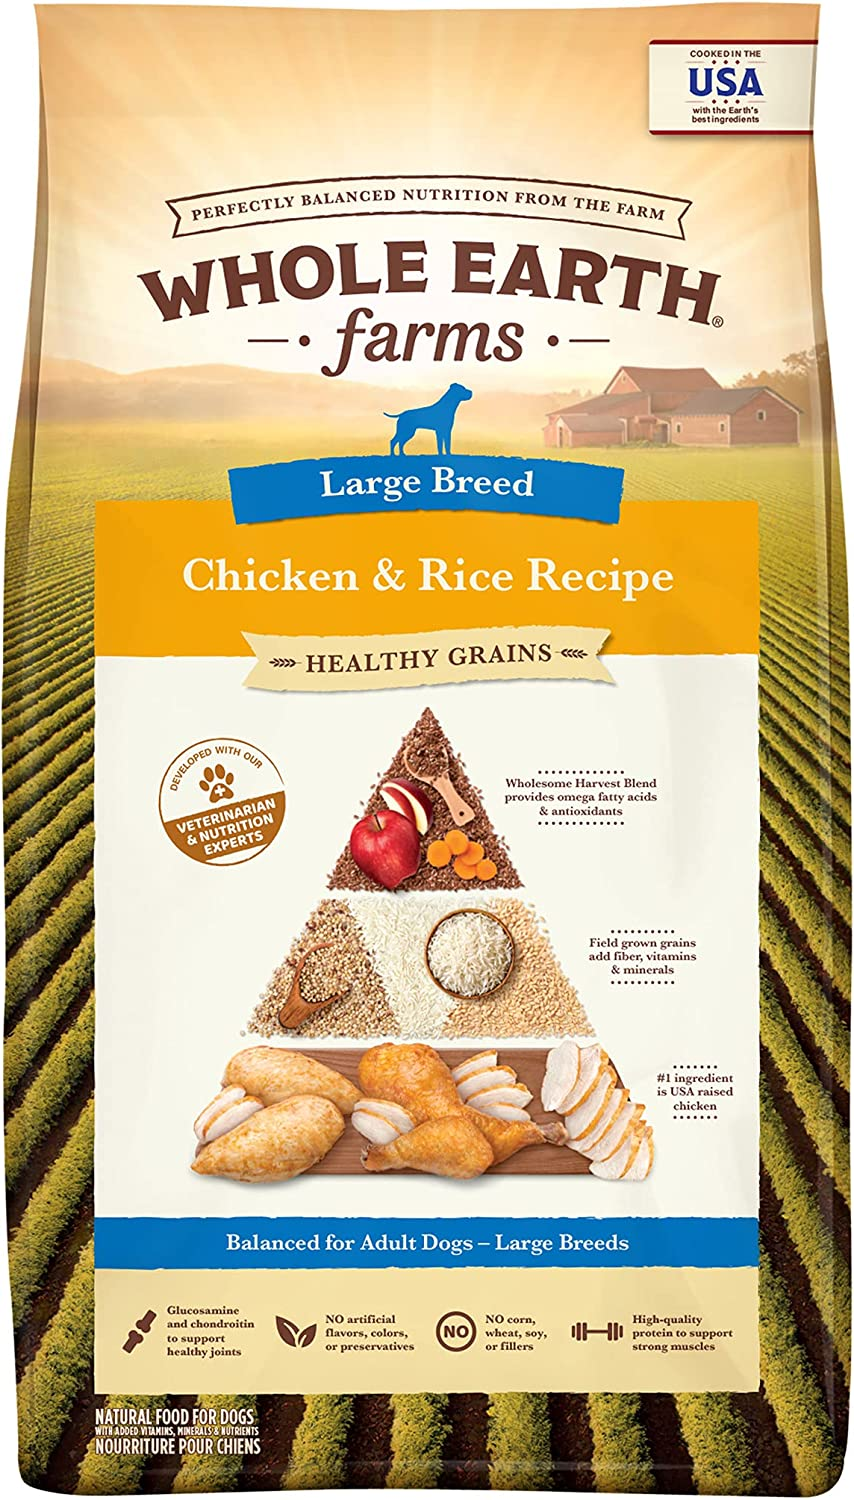 Whole Earth Farms Healthy Grains Large Breed Chicken and Rice Recipe Dry Dog Food - 12 lb. Bag